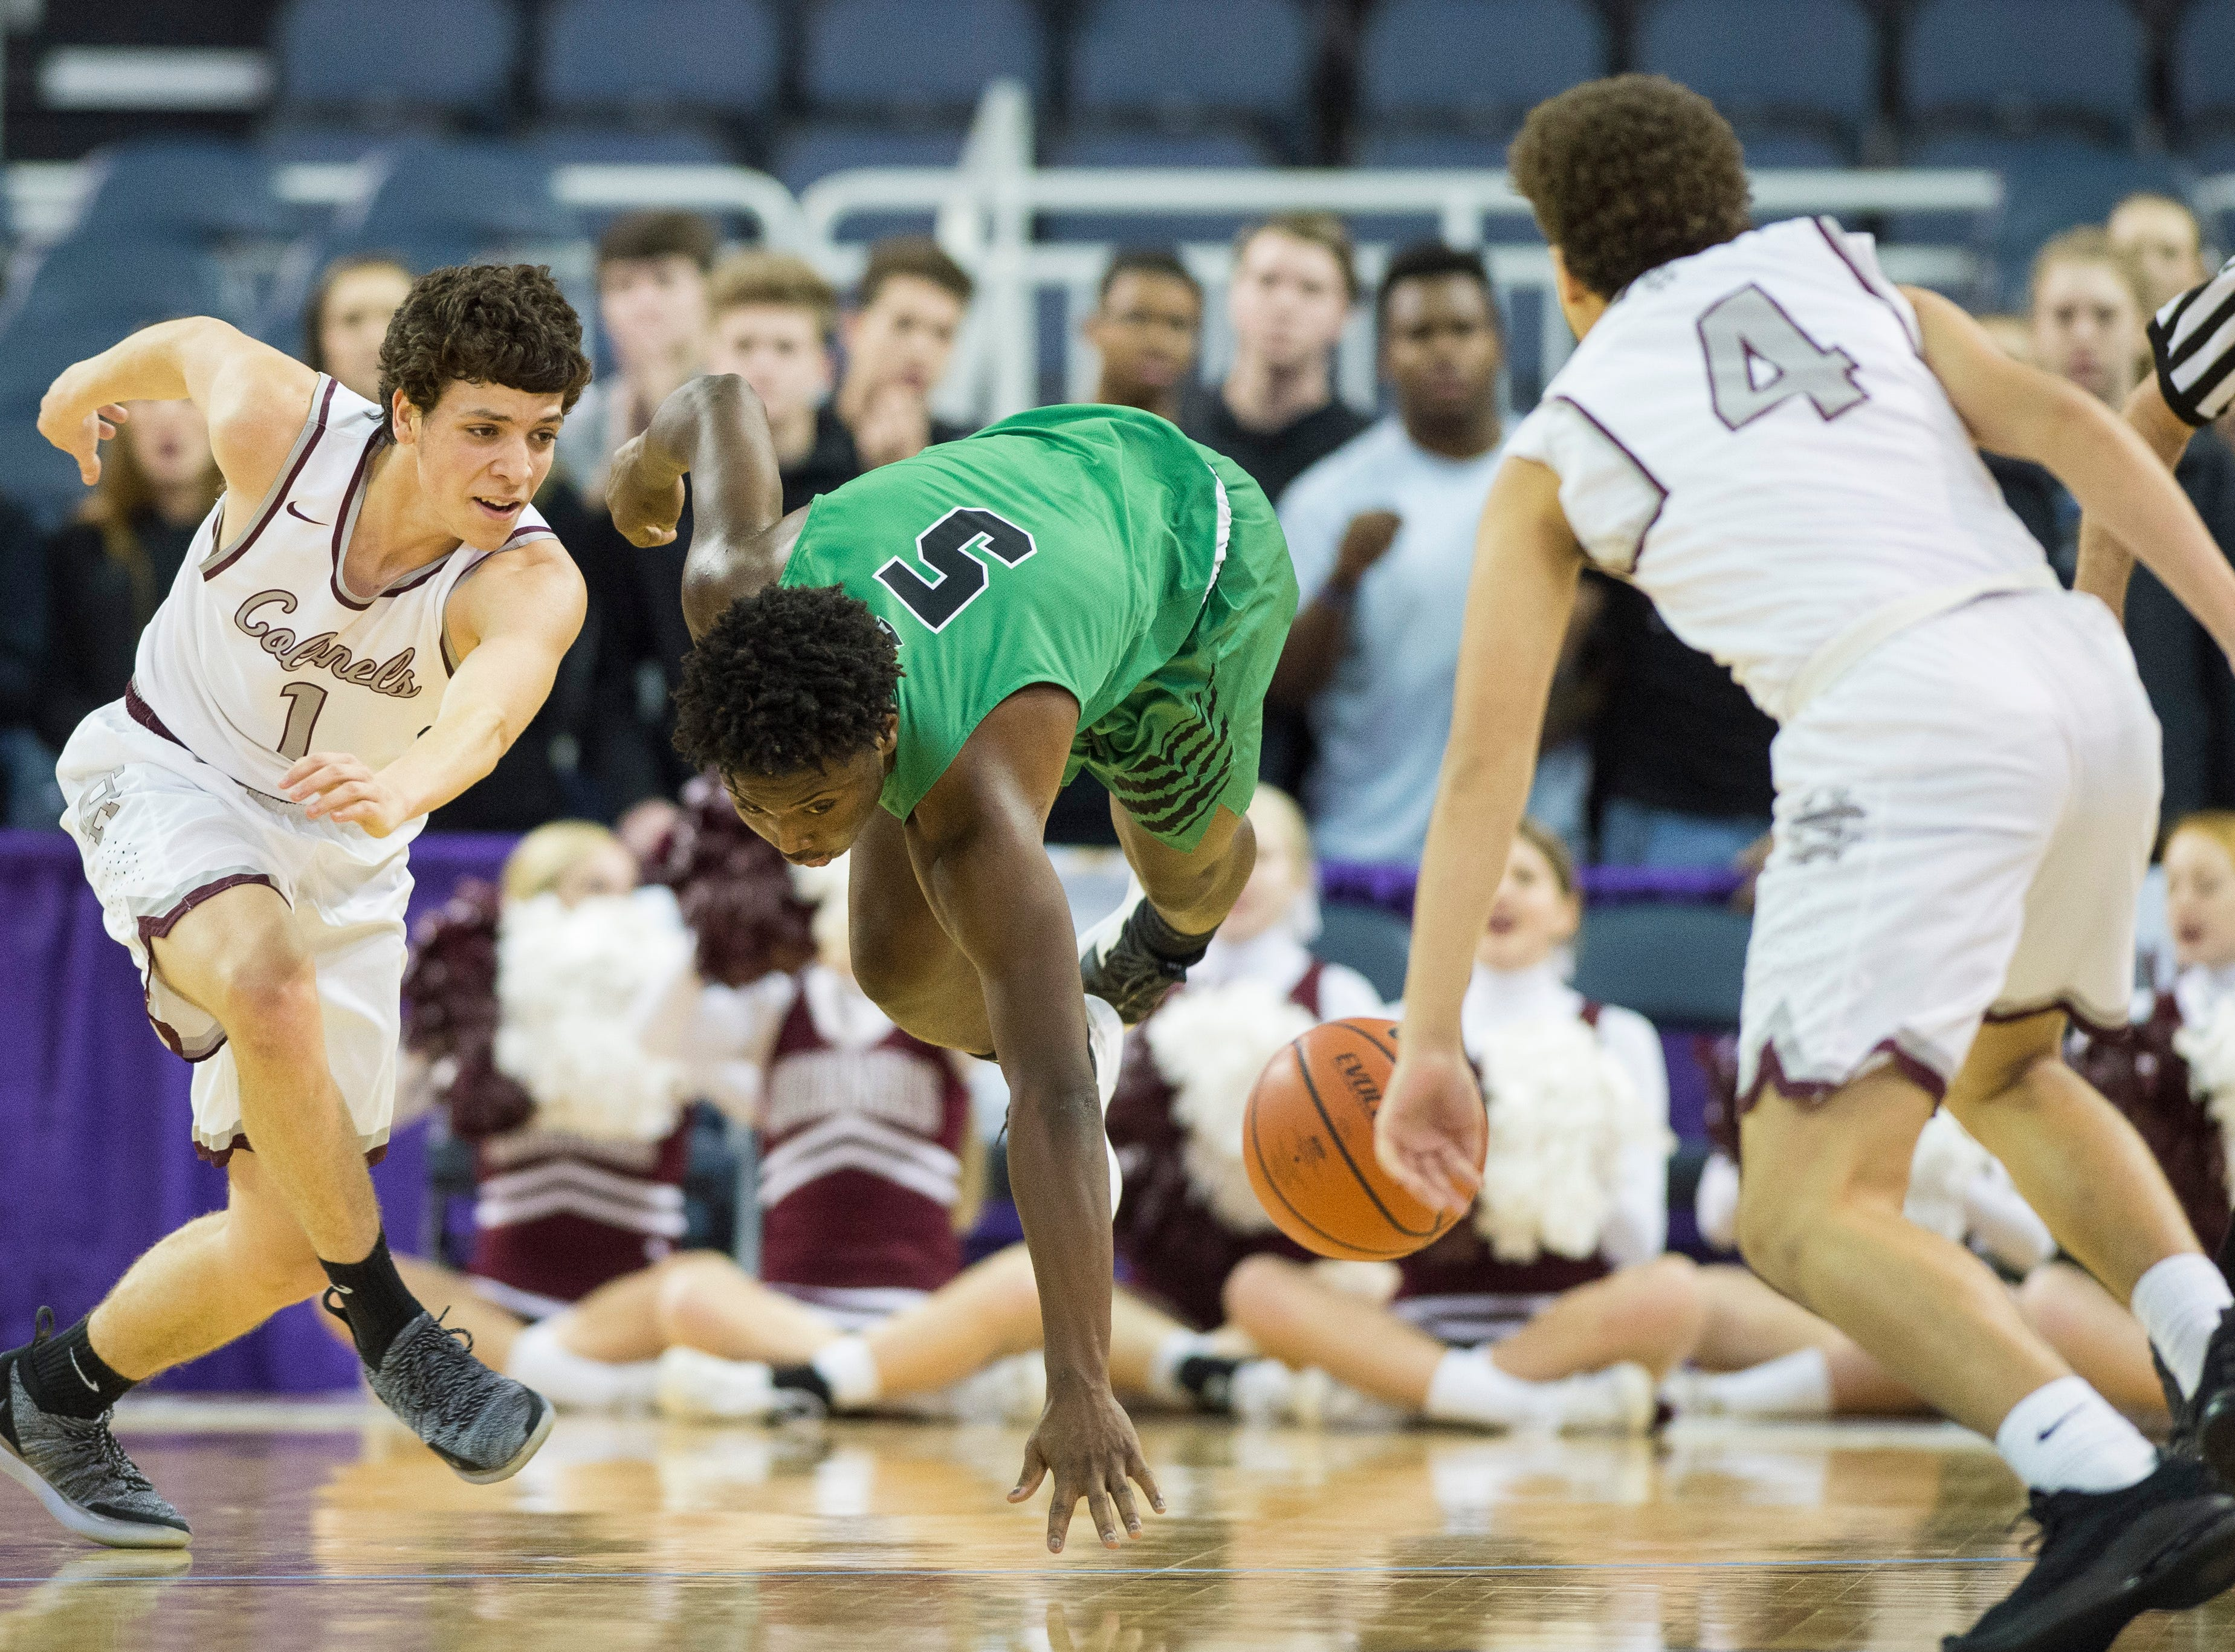 North's JT Skinner (5) and Henderson's Corey Stewart (1) chase after the ball during the Henderson County vs Evansville North basketball game in the River City Showcase at the Ford Center Friday, Dec. 7, 2018.